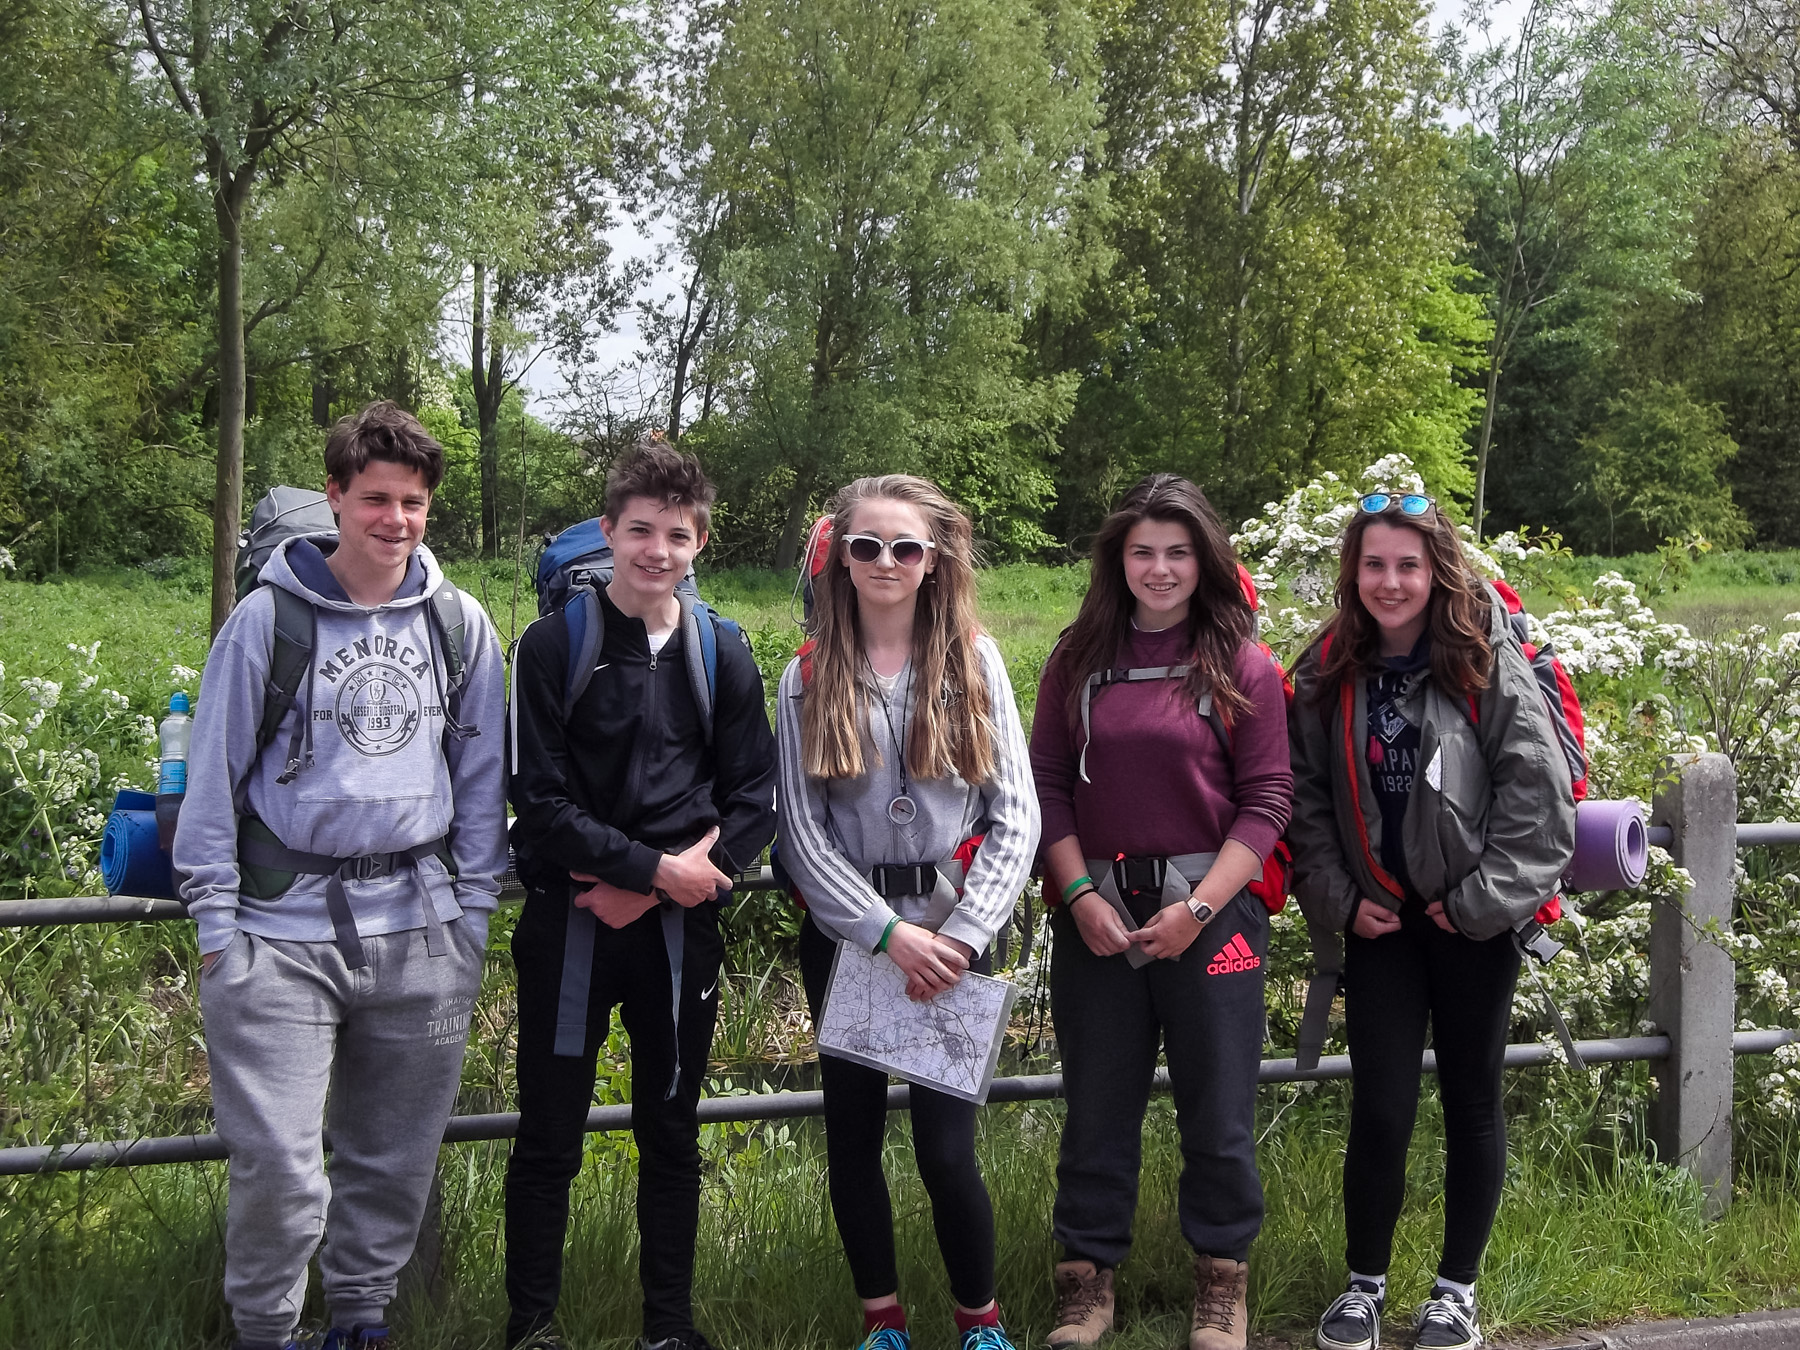 duke of edinburgh expedition may 2016 25